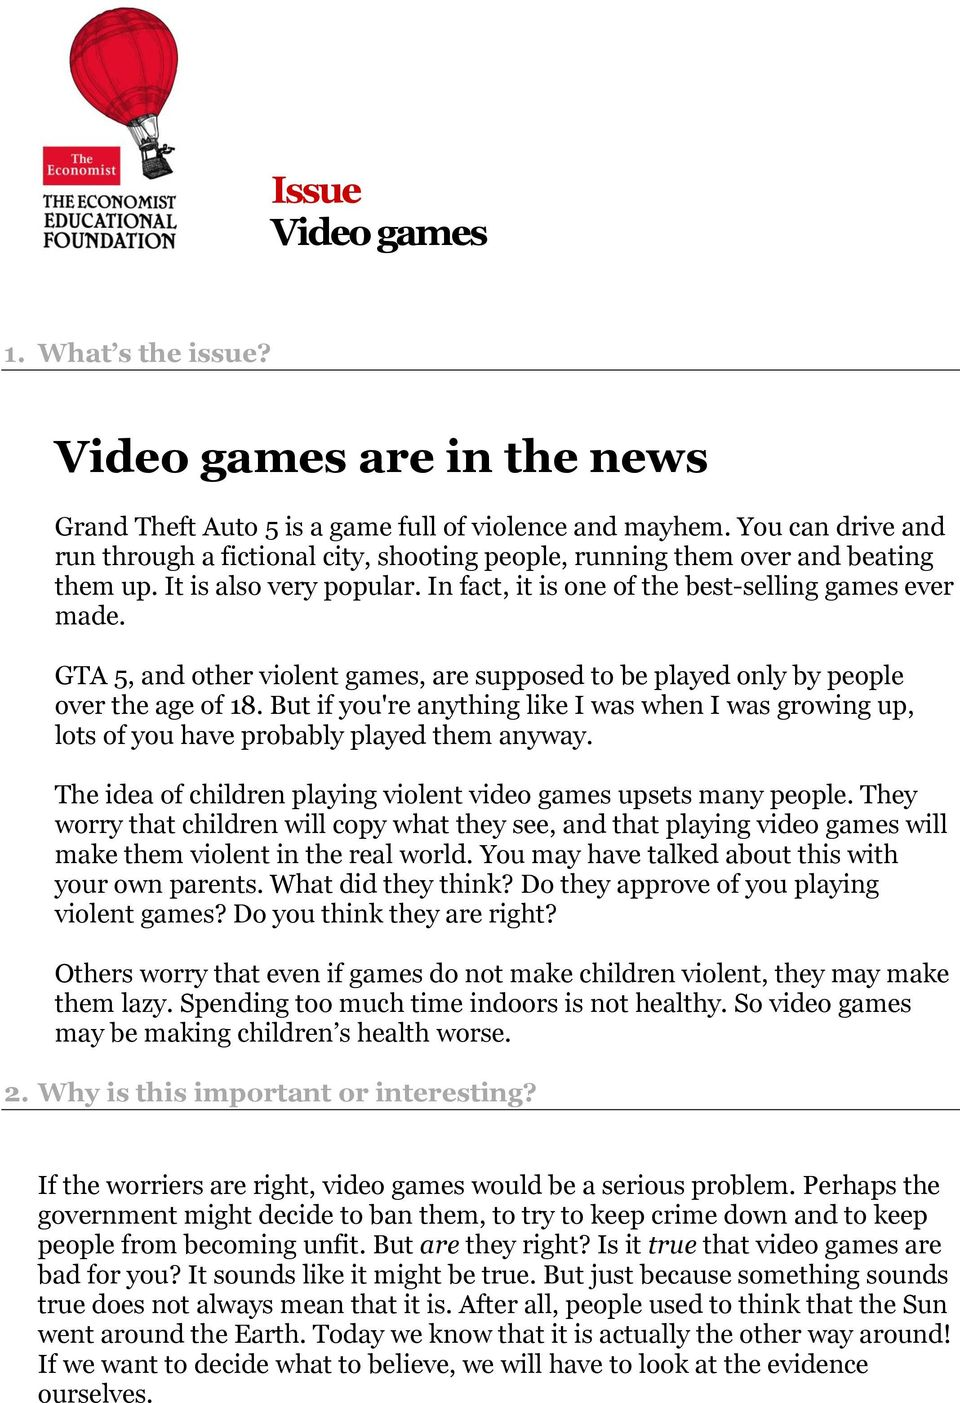 GTA 5, and other violent games, are supposed to be played only by people over the age of 18. But if you're anything like I was when I was growing up, lots of you have probably played them anyway.